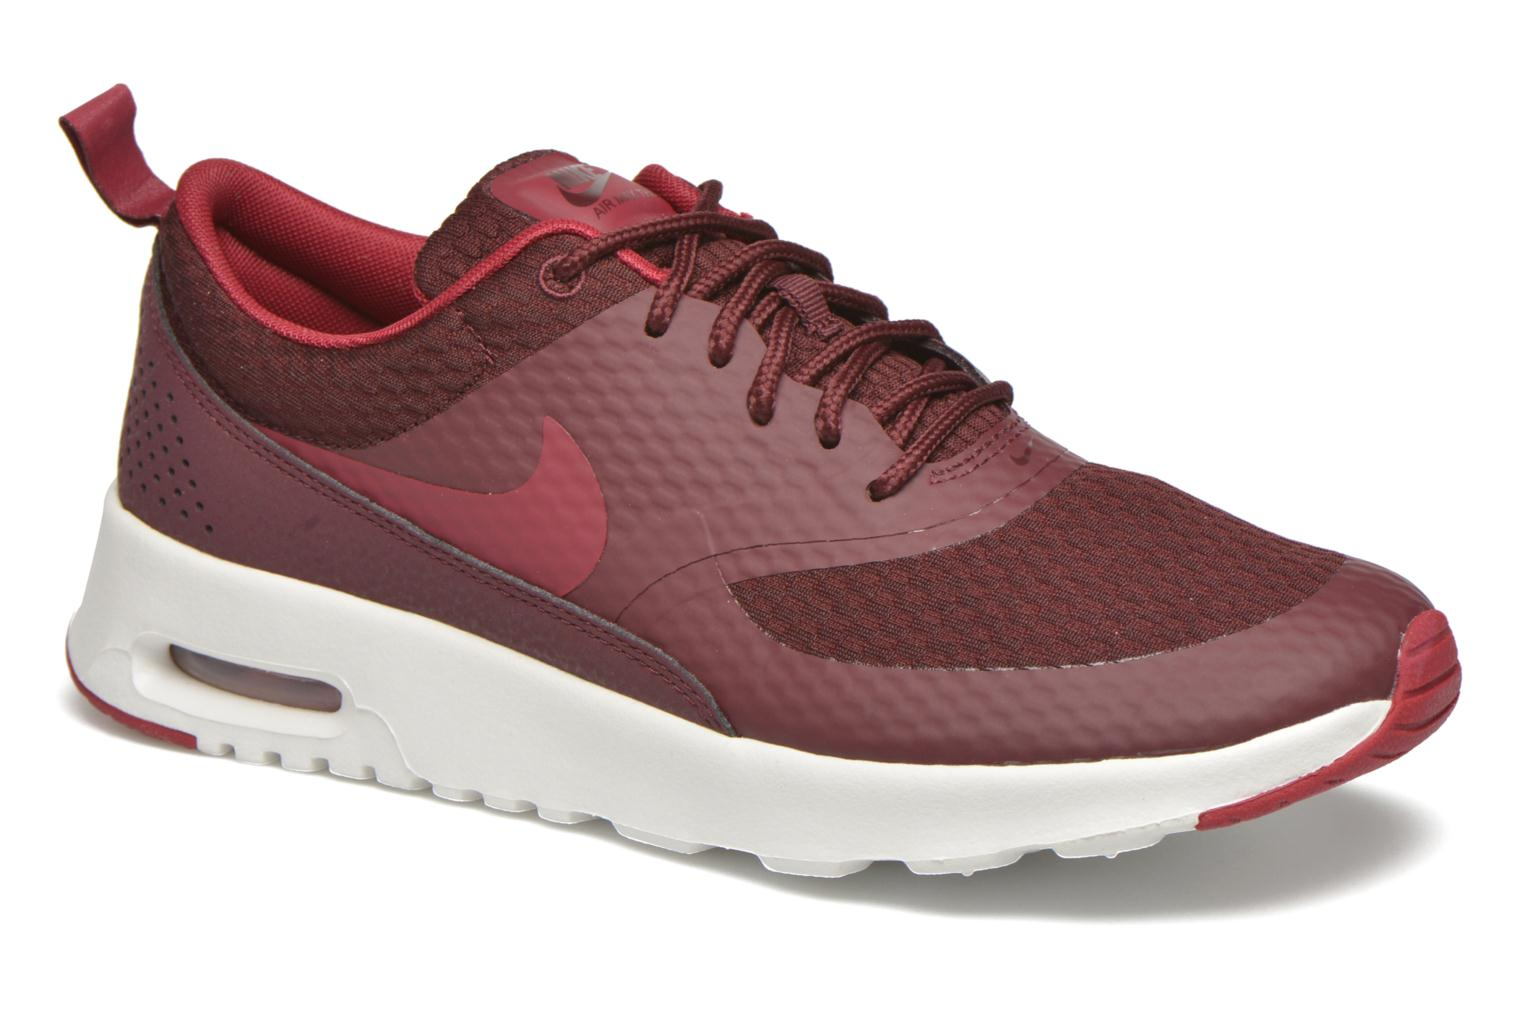 nike air max thea burgundy. Black Bedroom Furniture Sets. Home Design Ideas